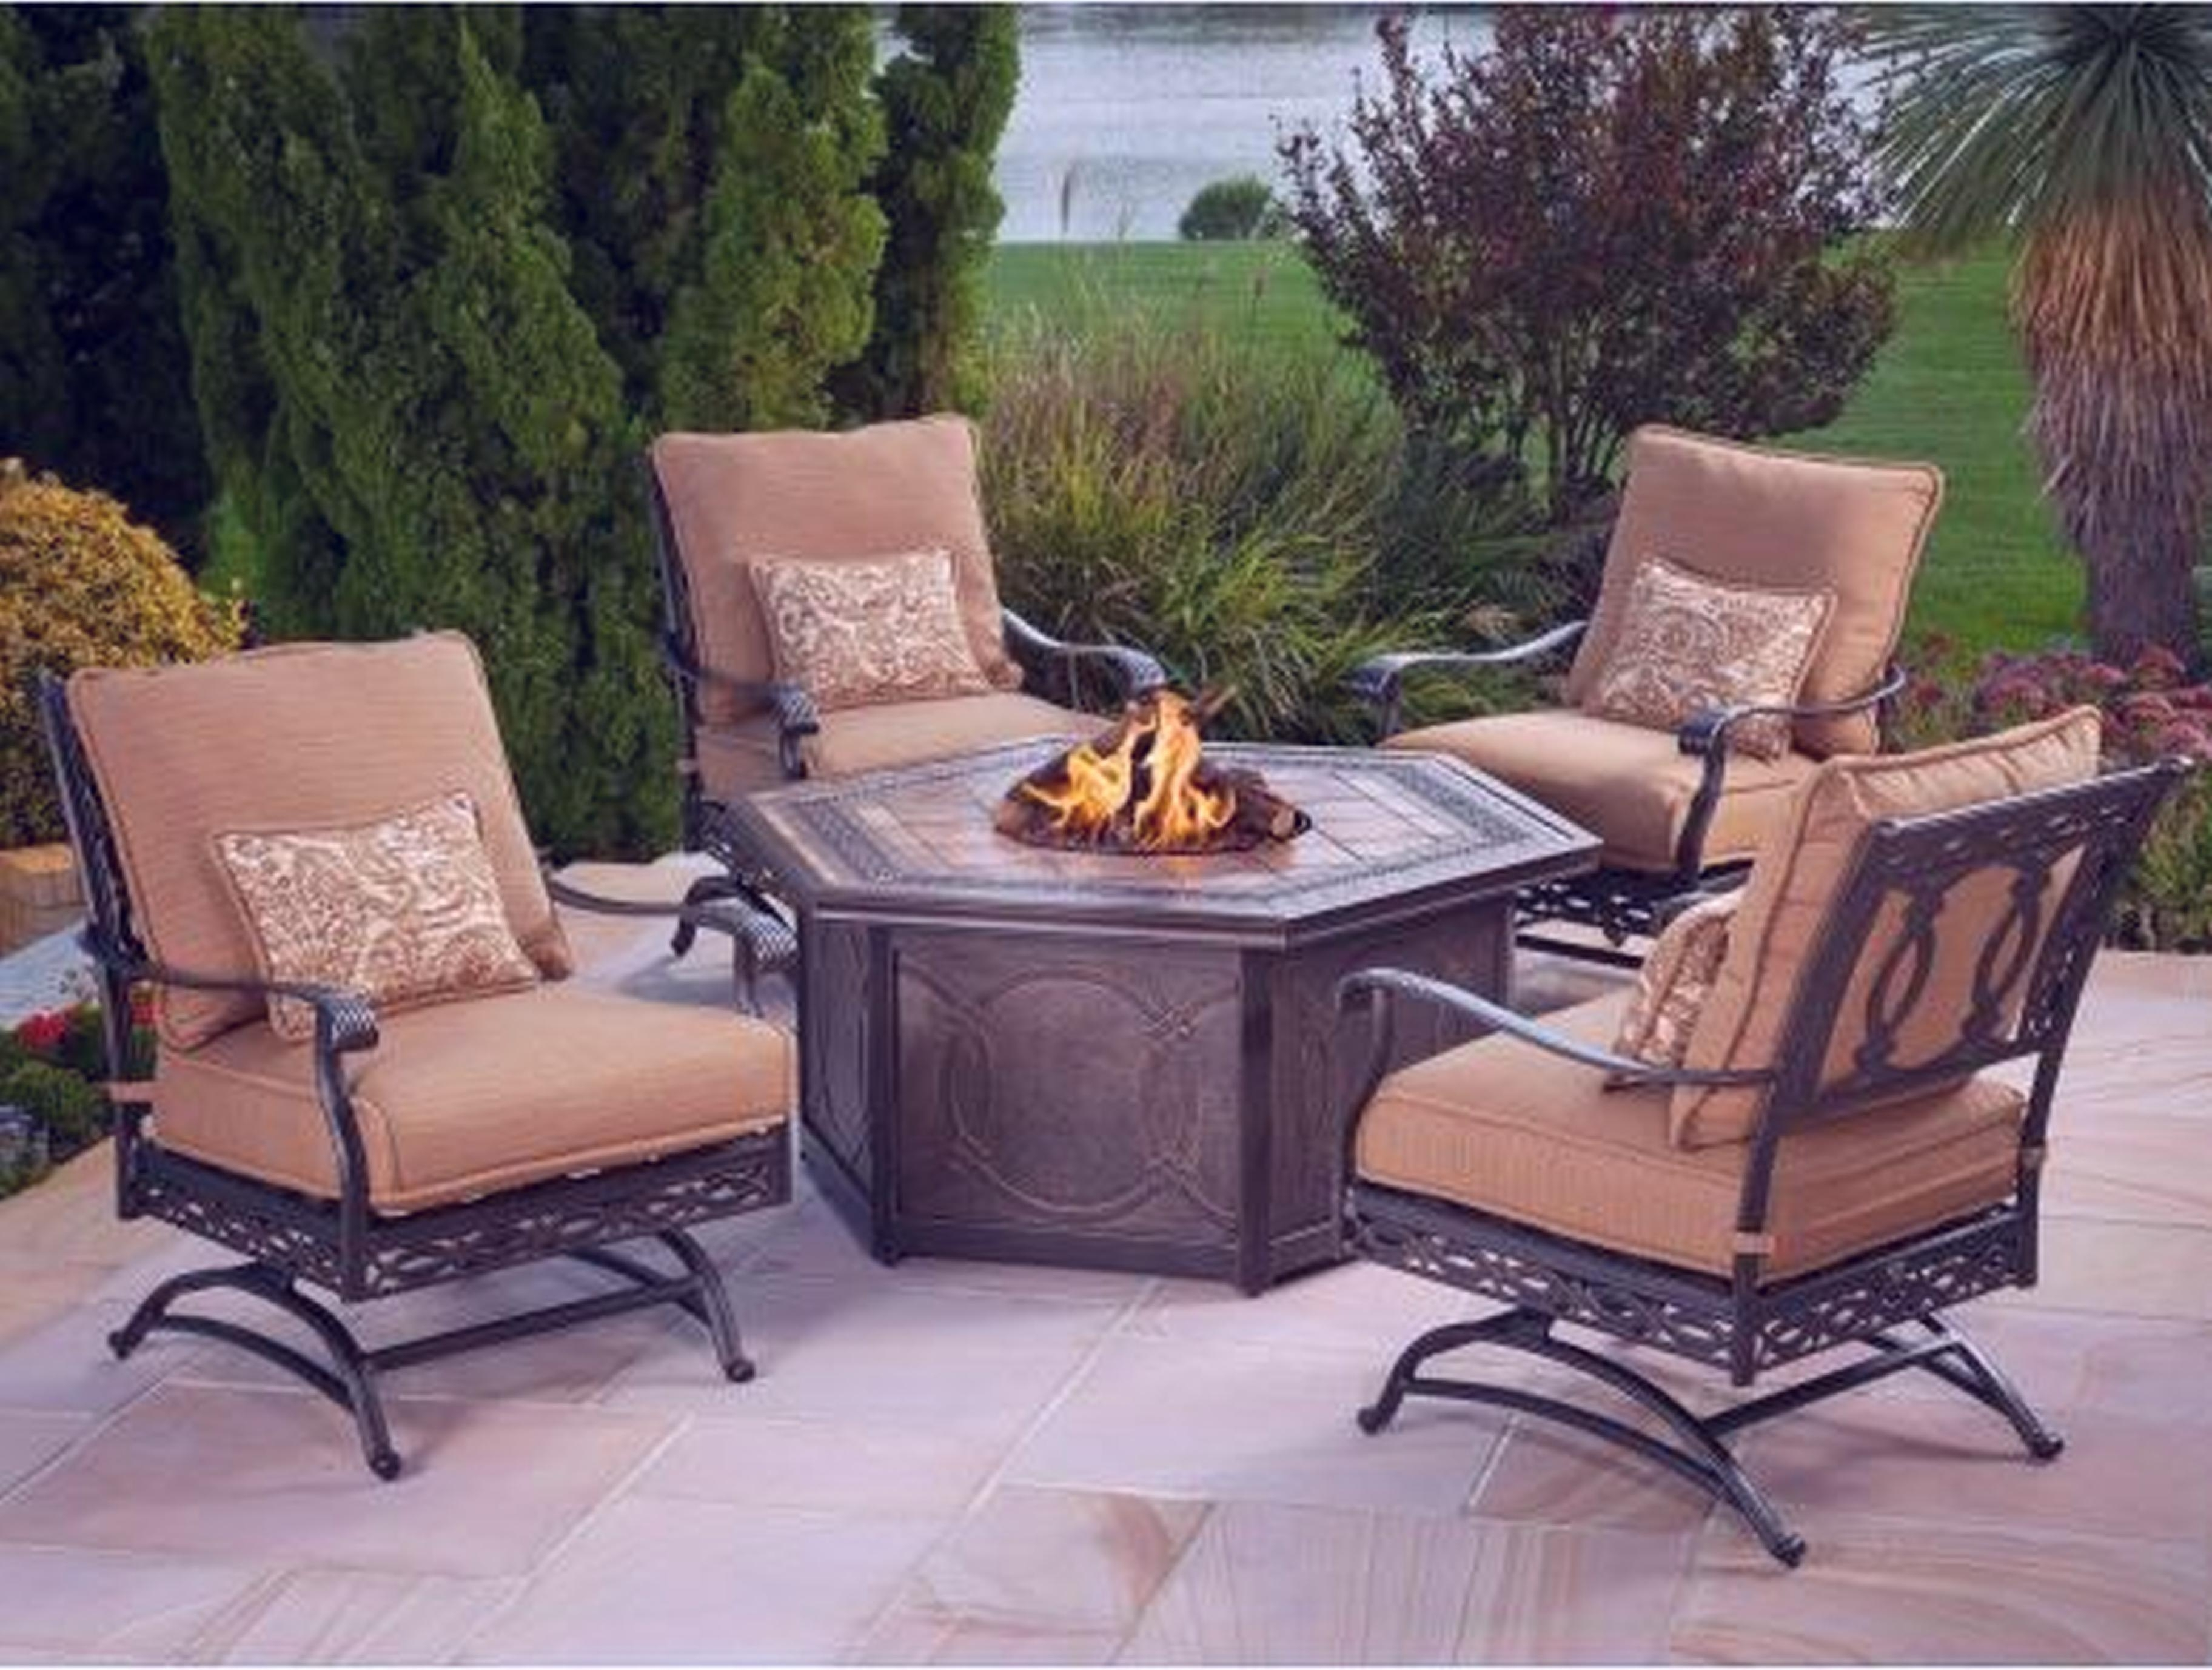 Widely Used Target Patio Furniture Conversation Sets Pertaining To Patio Conversation Sets Clearance Patio Conversation Sets Under  (View 19 of 20)